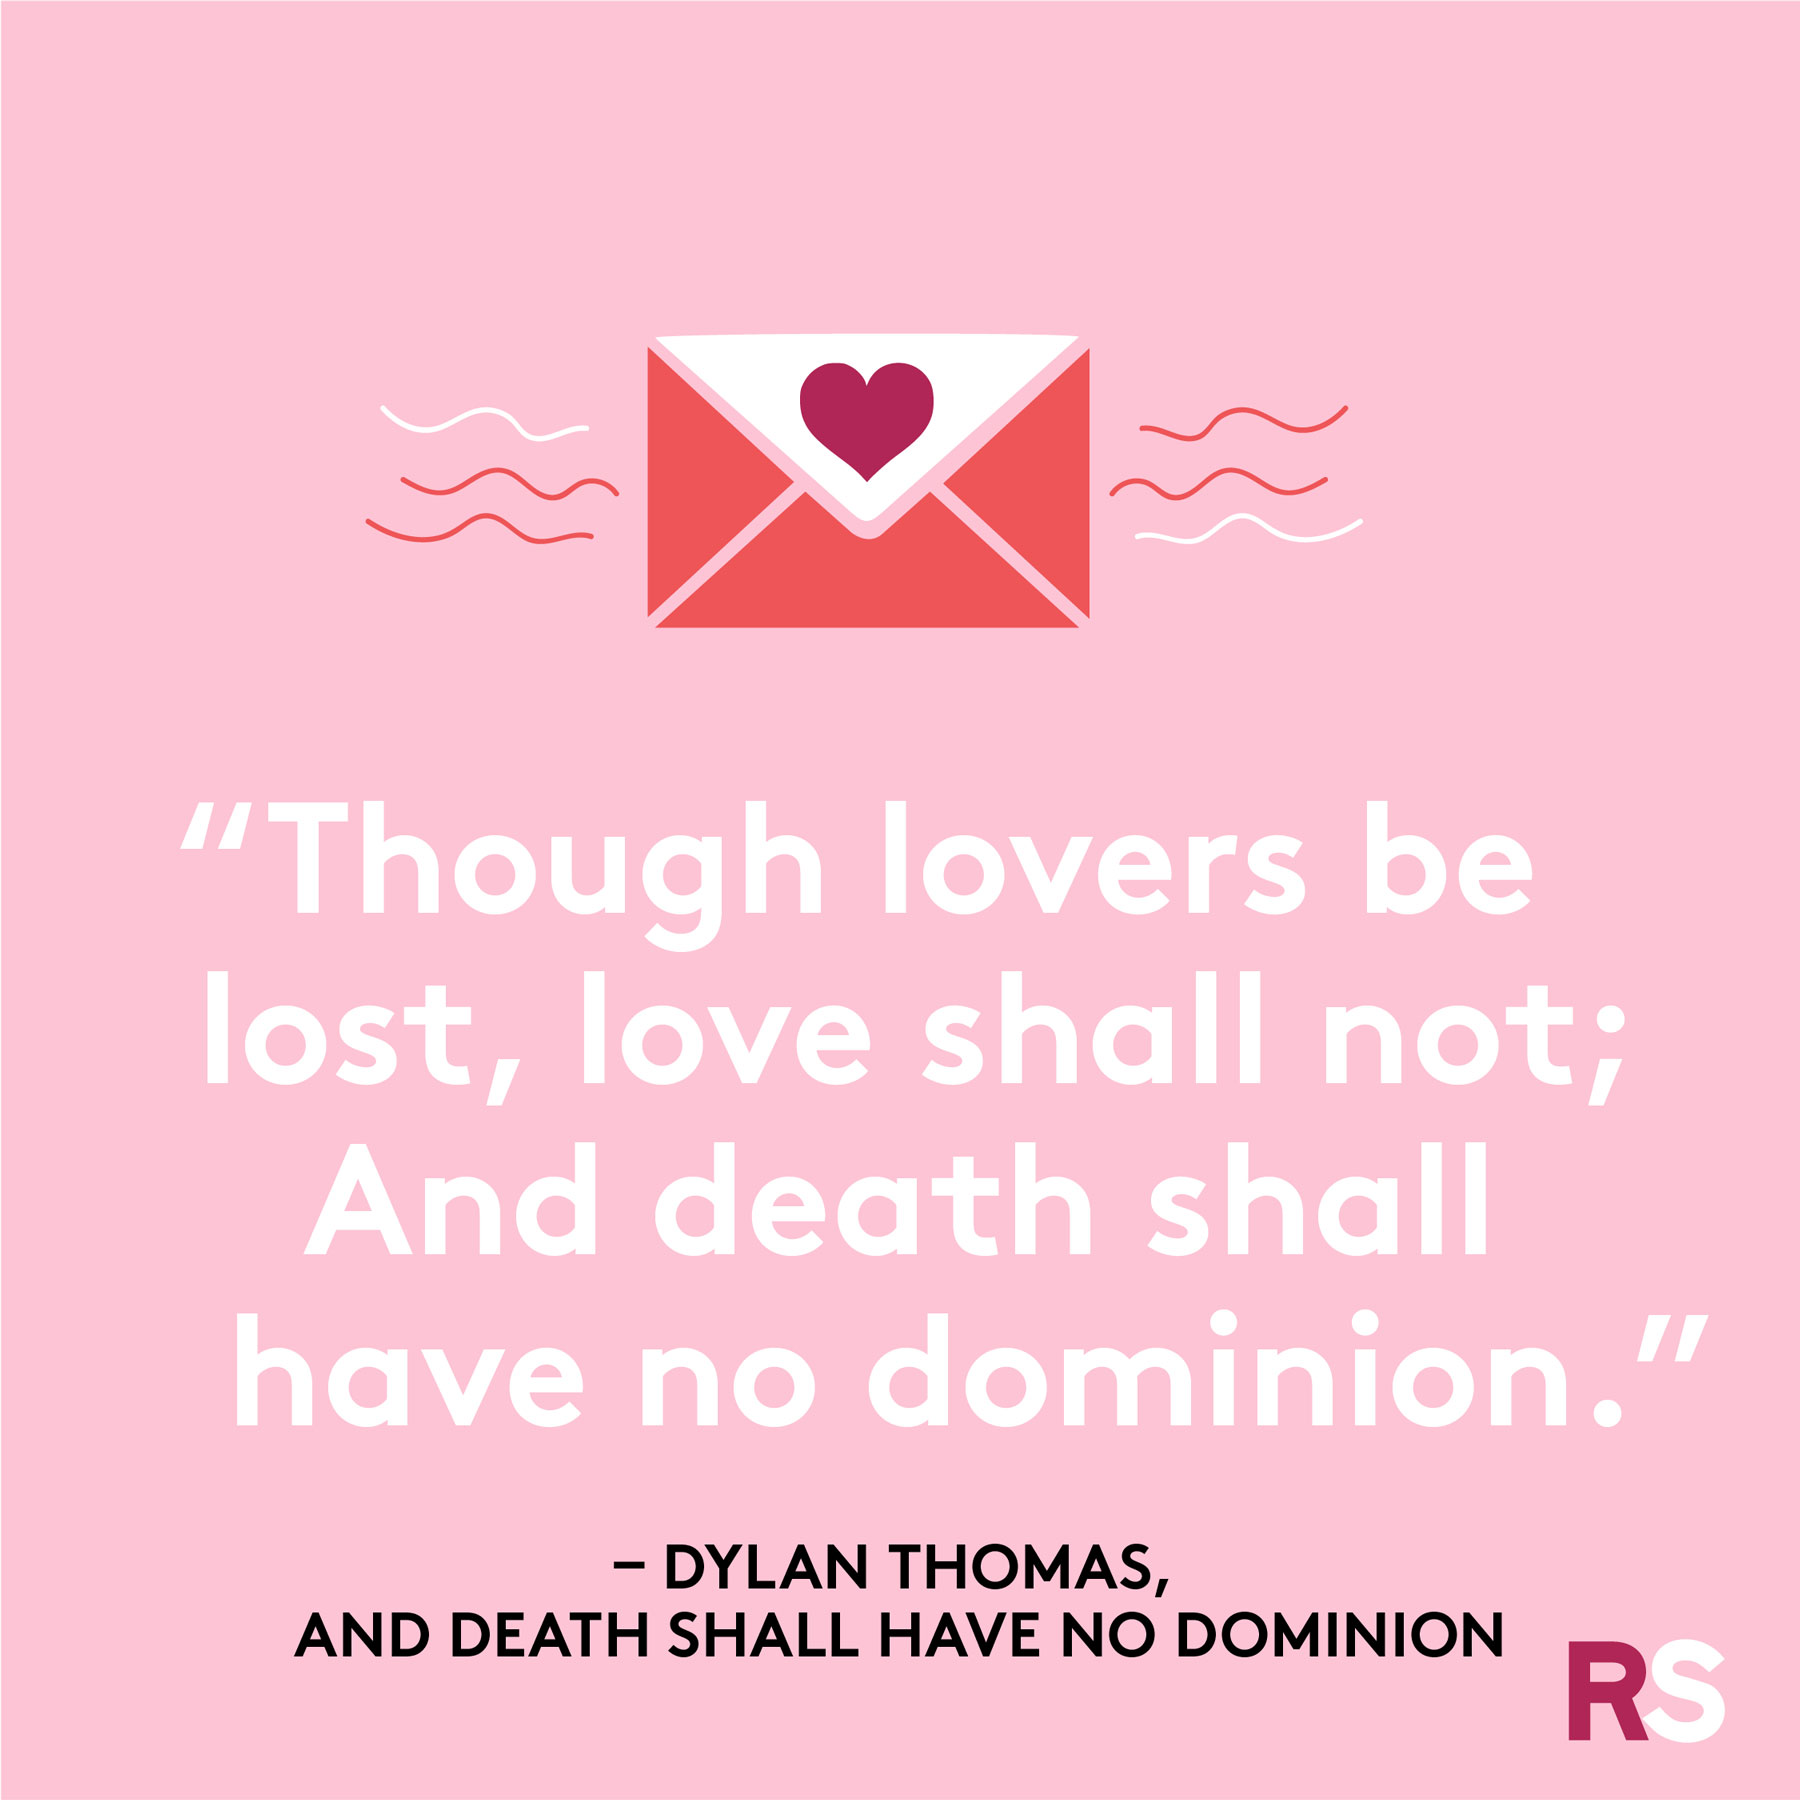 Love quotes, quotes about love - Dylan Thomas, And Death Shall Have No Dominion